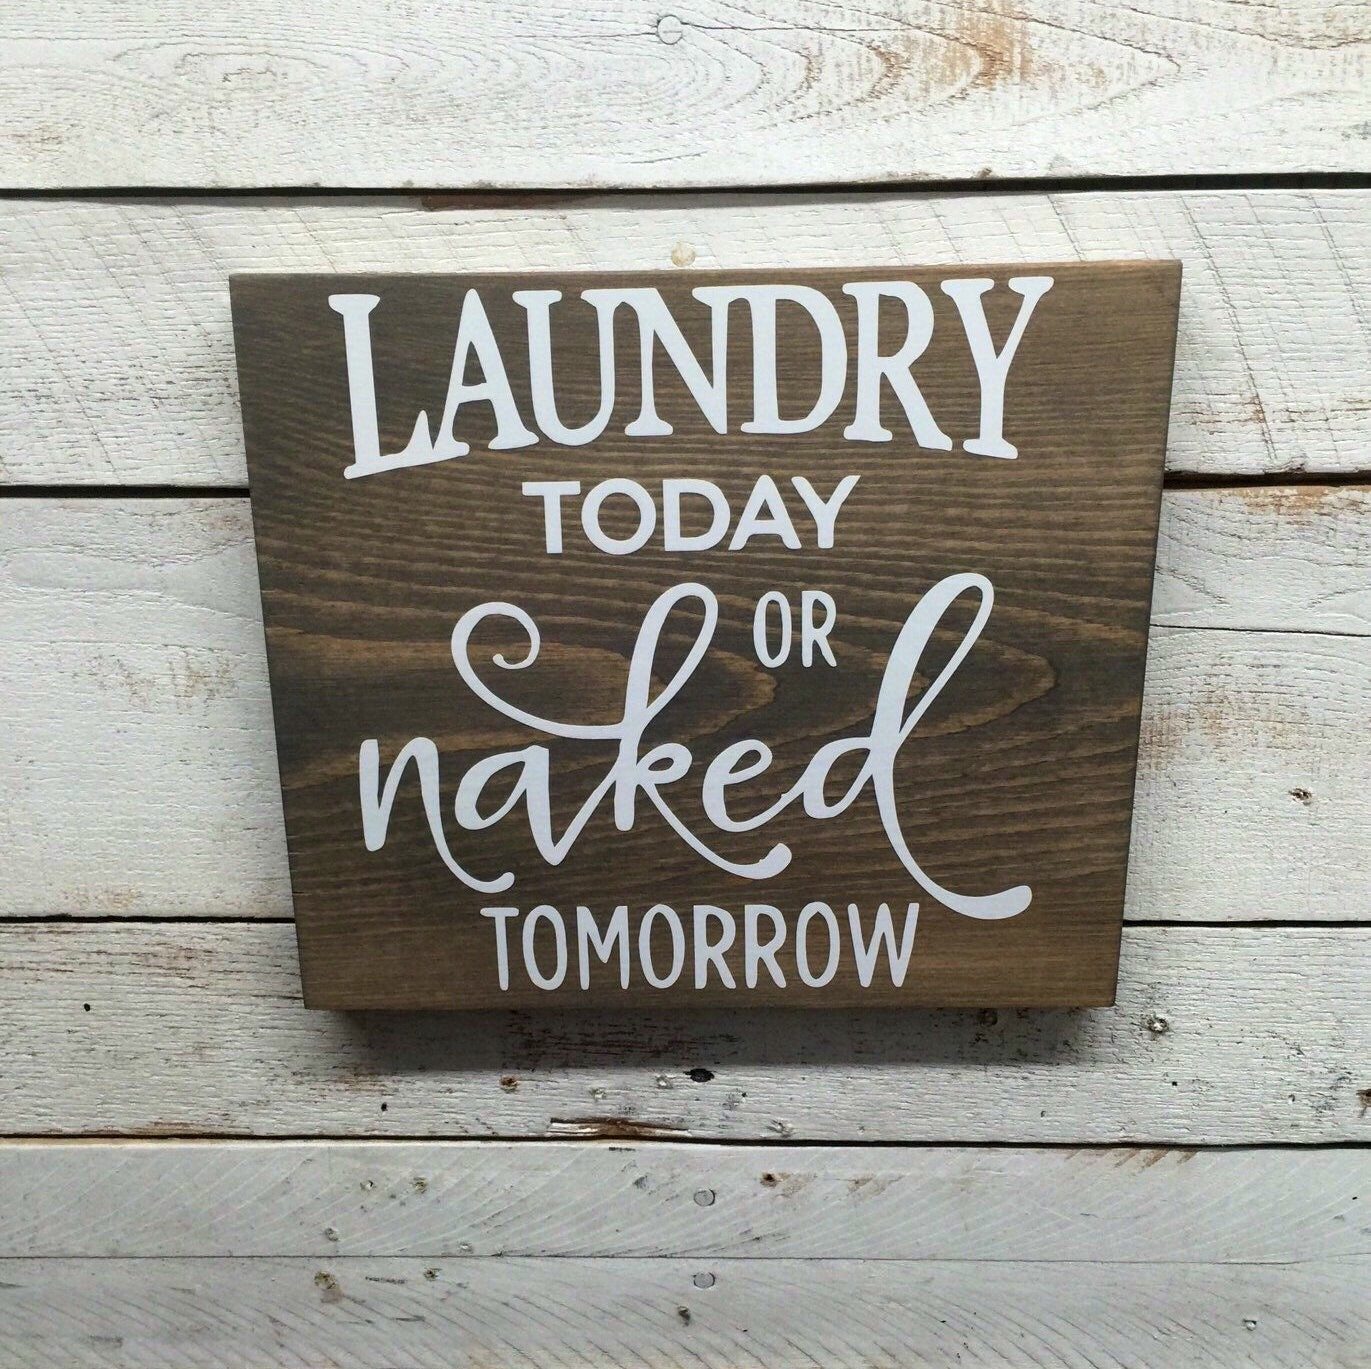 Rustic Laundry Room Signs Rustic Laundry Room Decorlaundry Today Or Naked Tomorrow